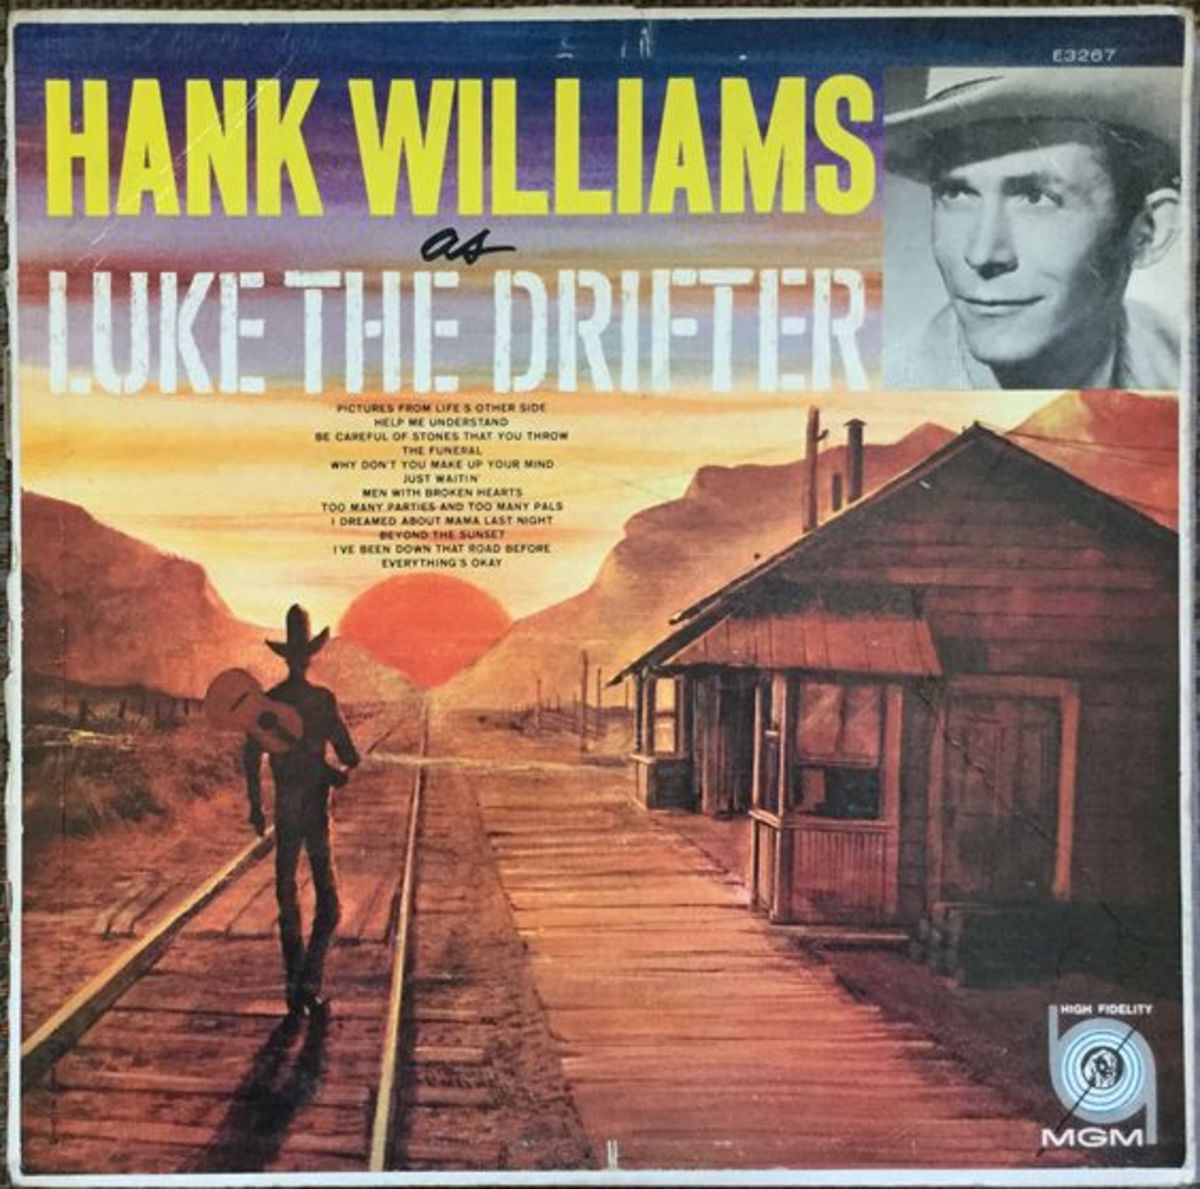 Luke, The Drifter, the name Hank, Sr, use to record songs by for a time.